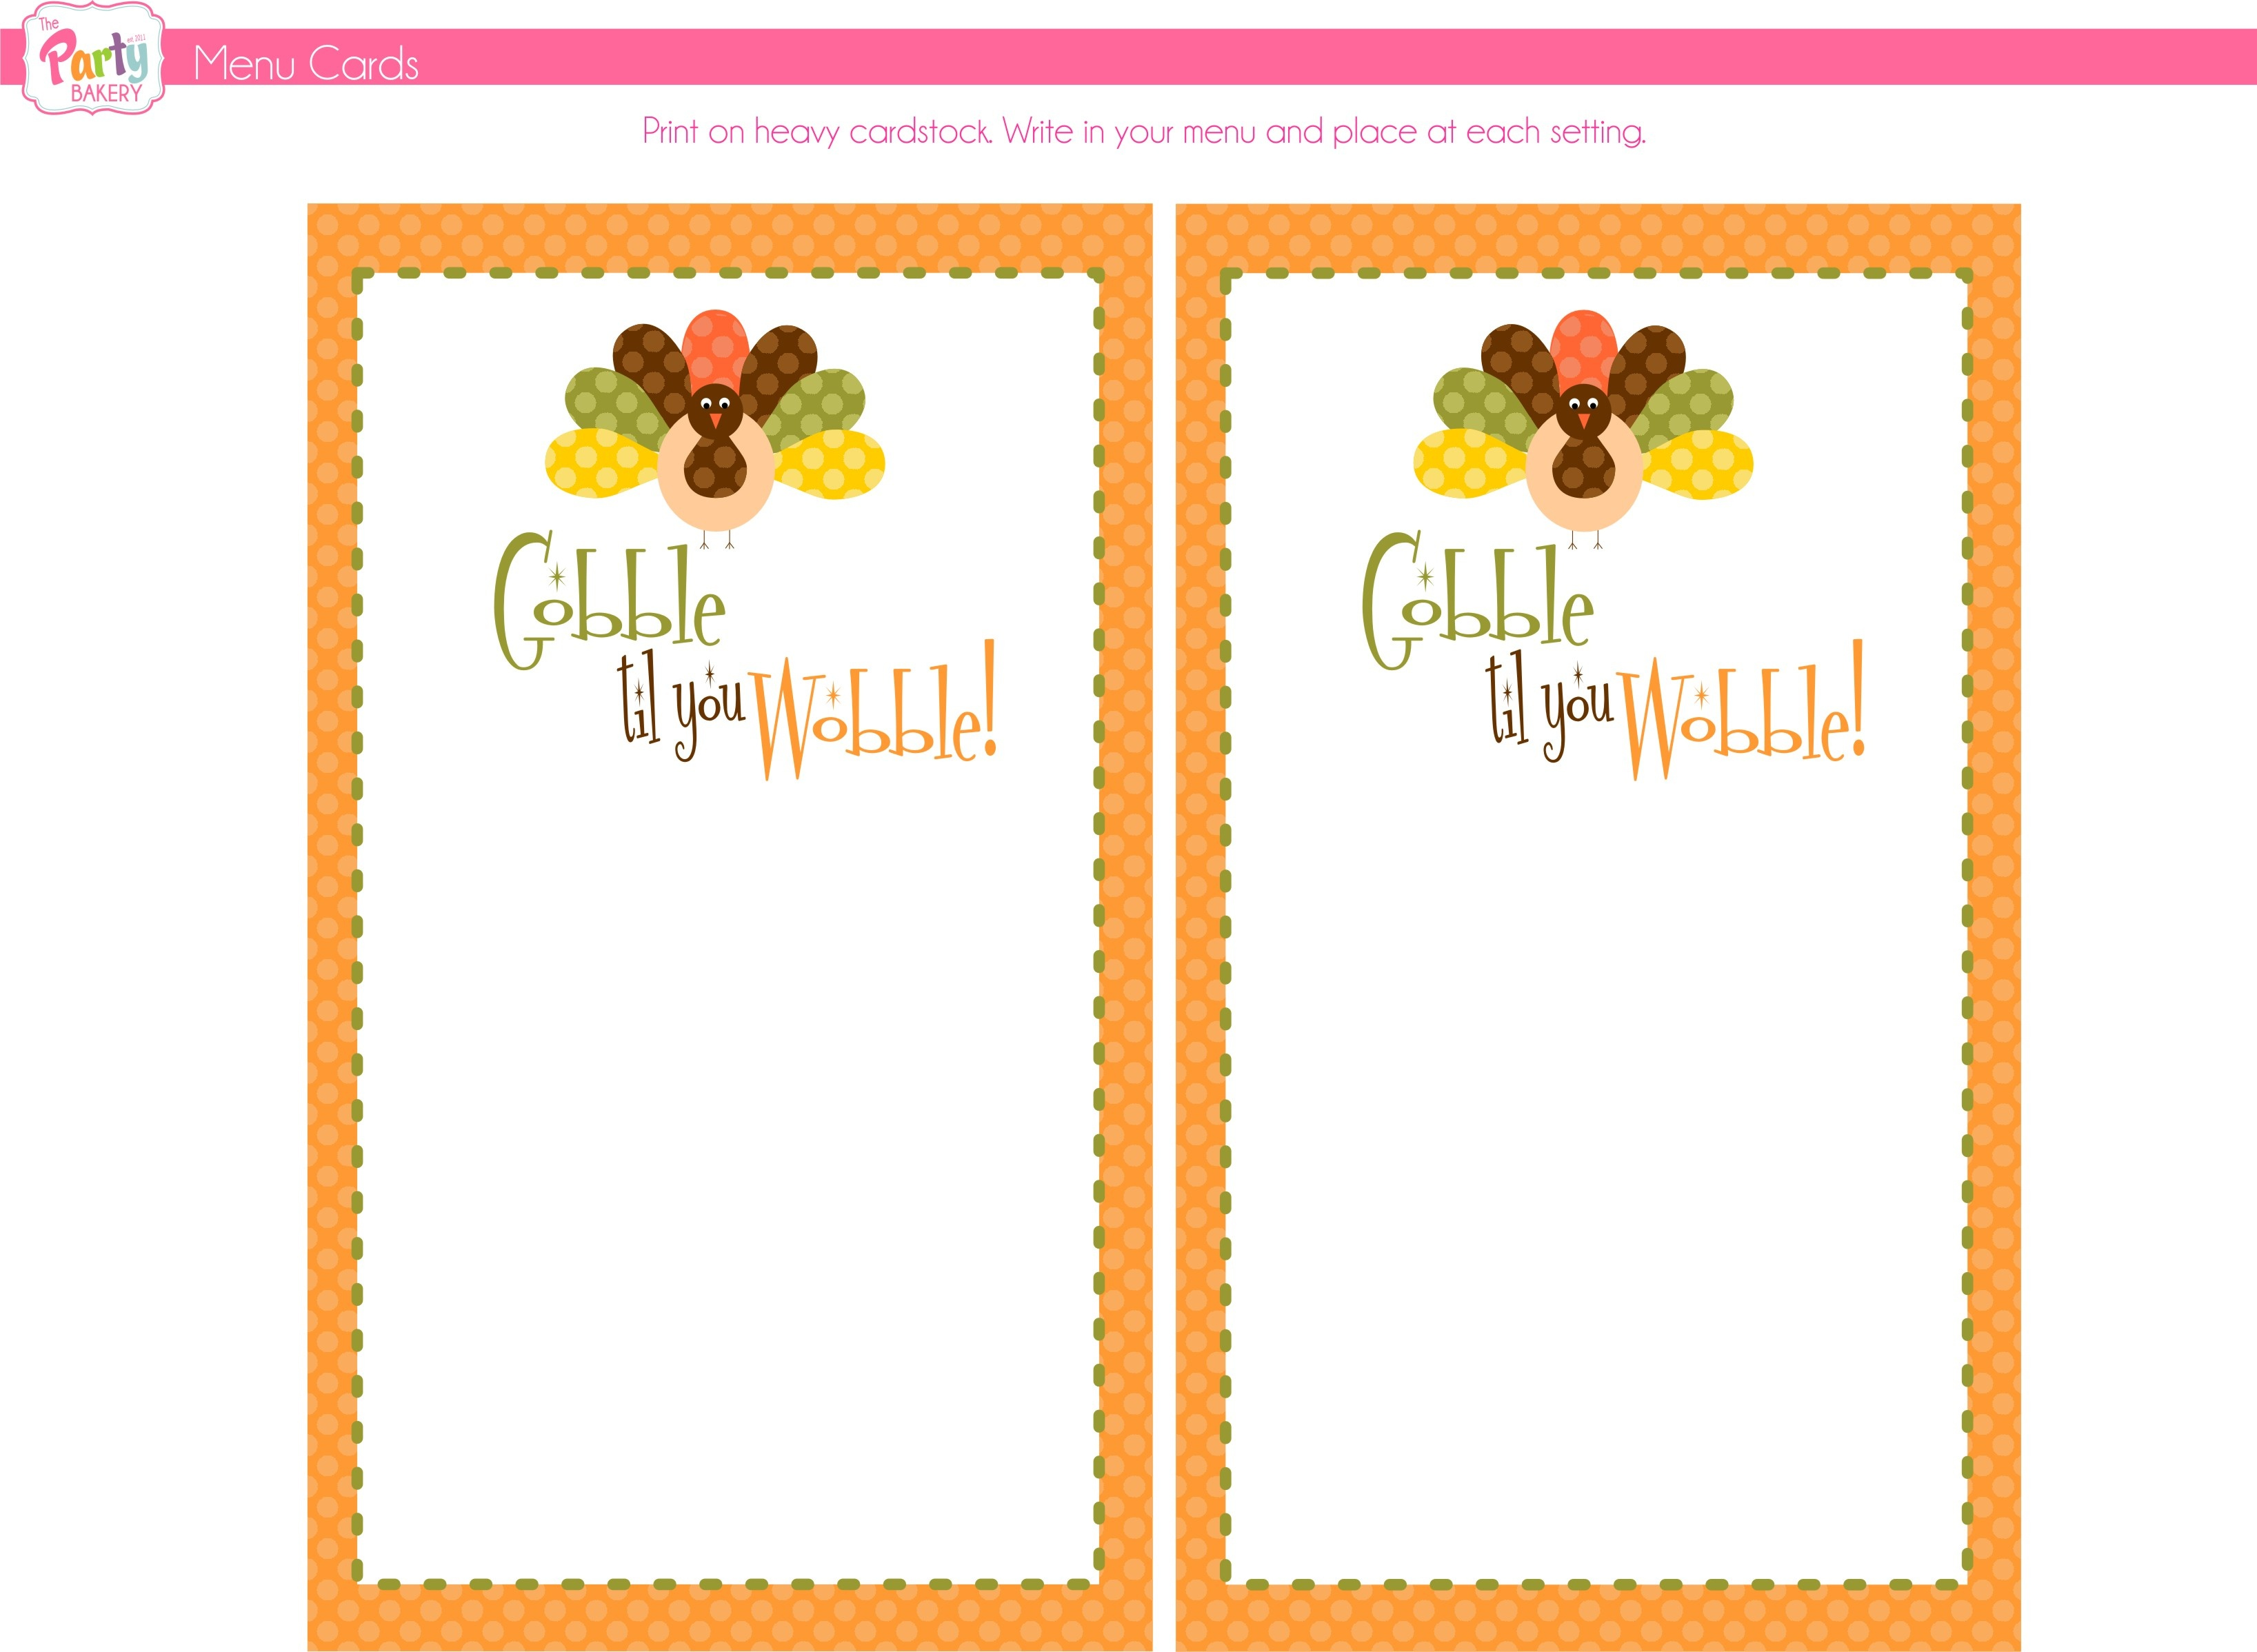 Printable Thanksgiving Menu Templates For Free – Happy Easter - Free Printable Thanksgiving Menu Template